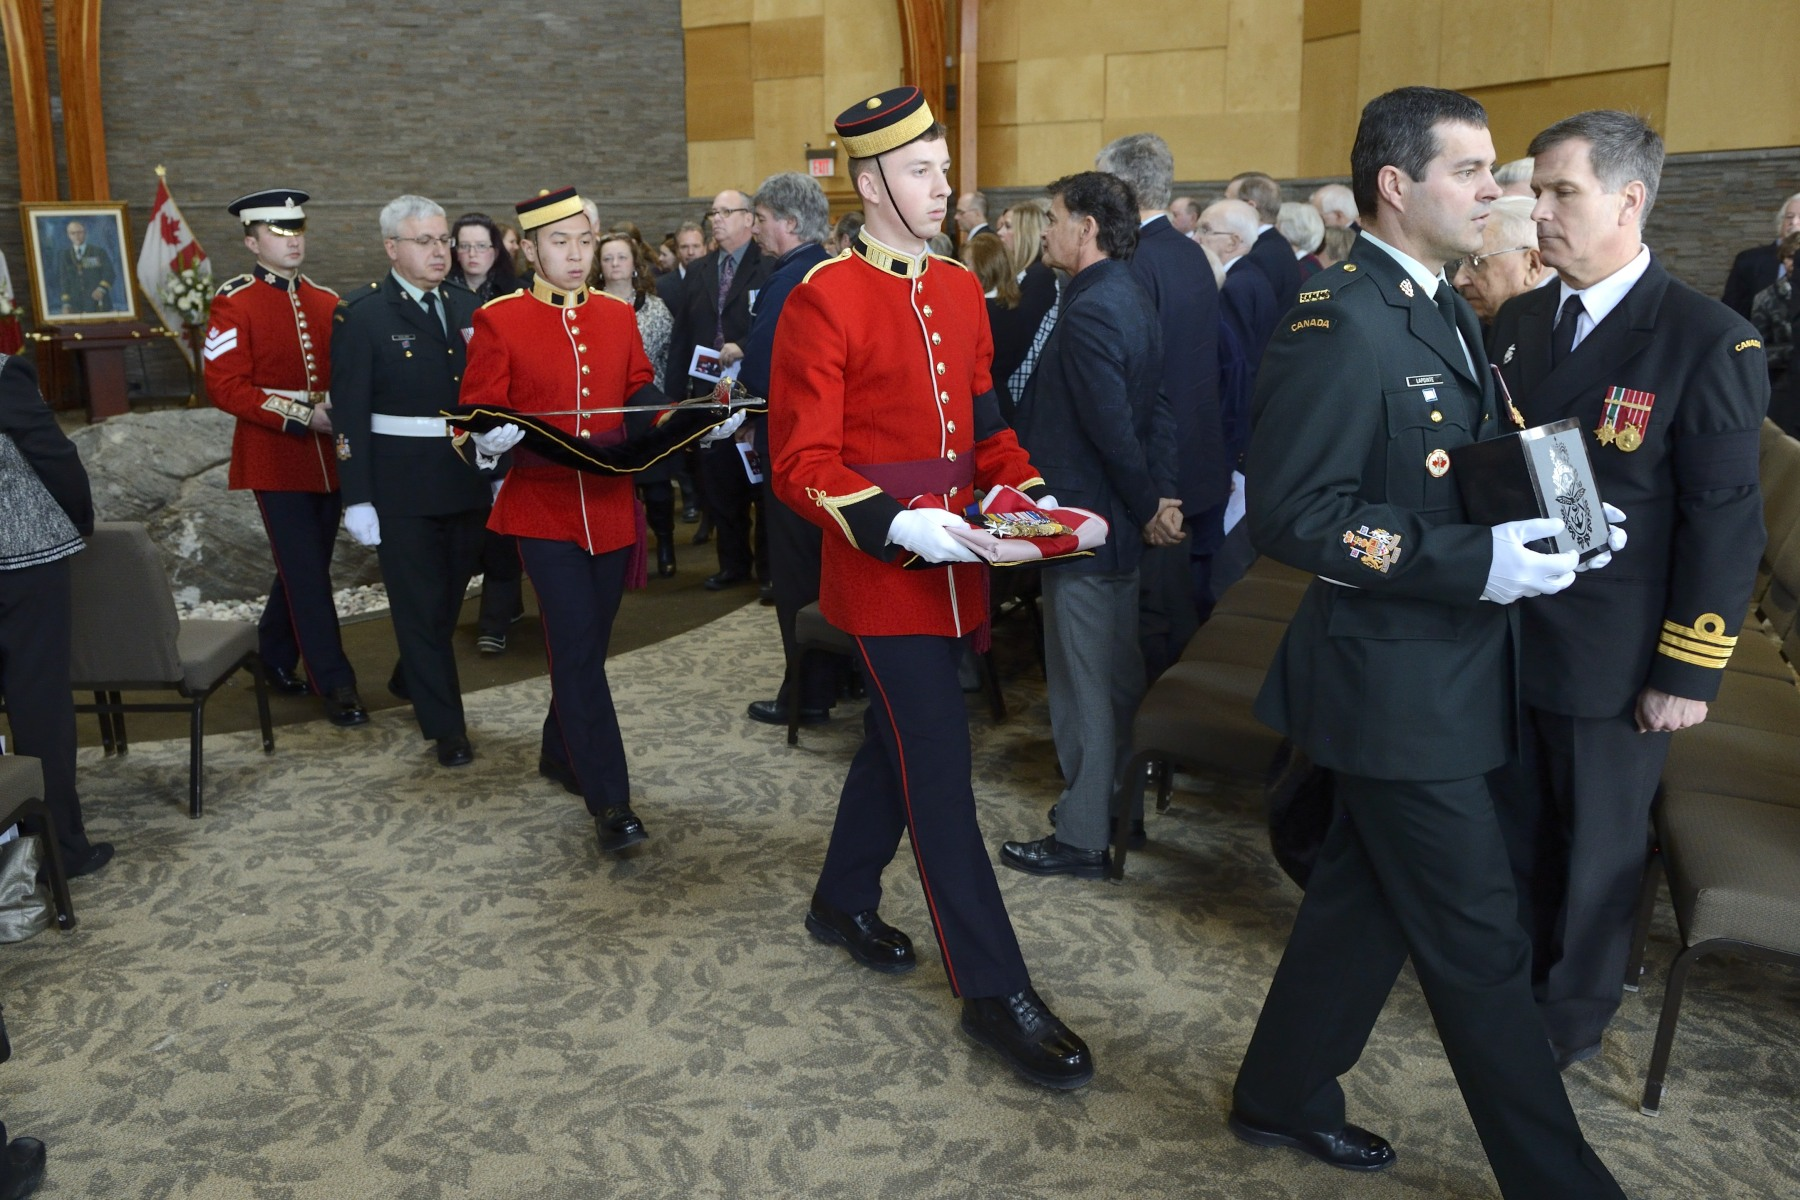 The ceremony took place at the Beechwood Cemetery, the National Cemetery of Canada, in Ottawa.